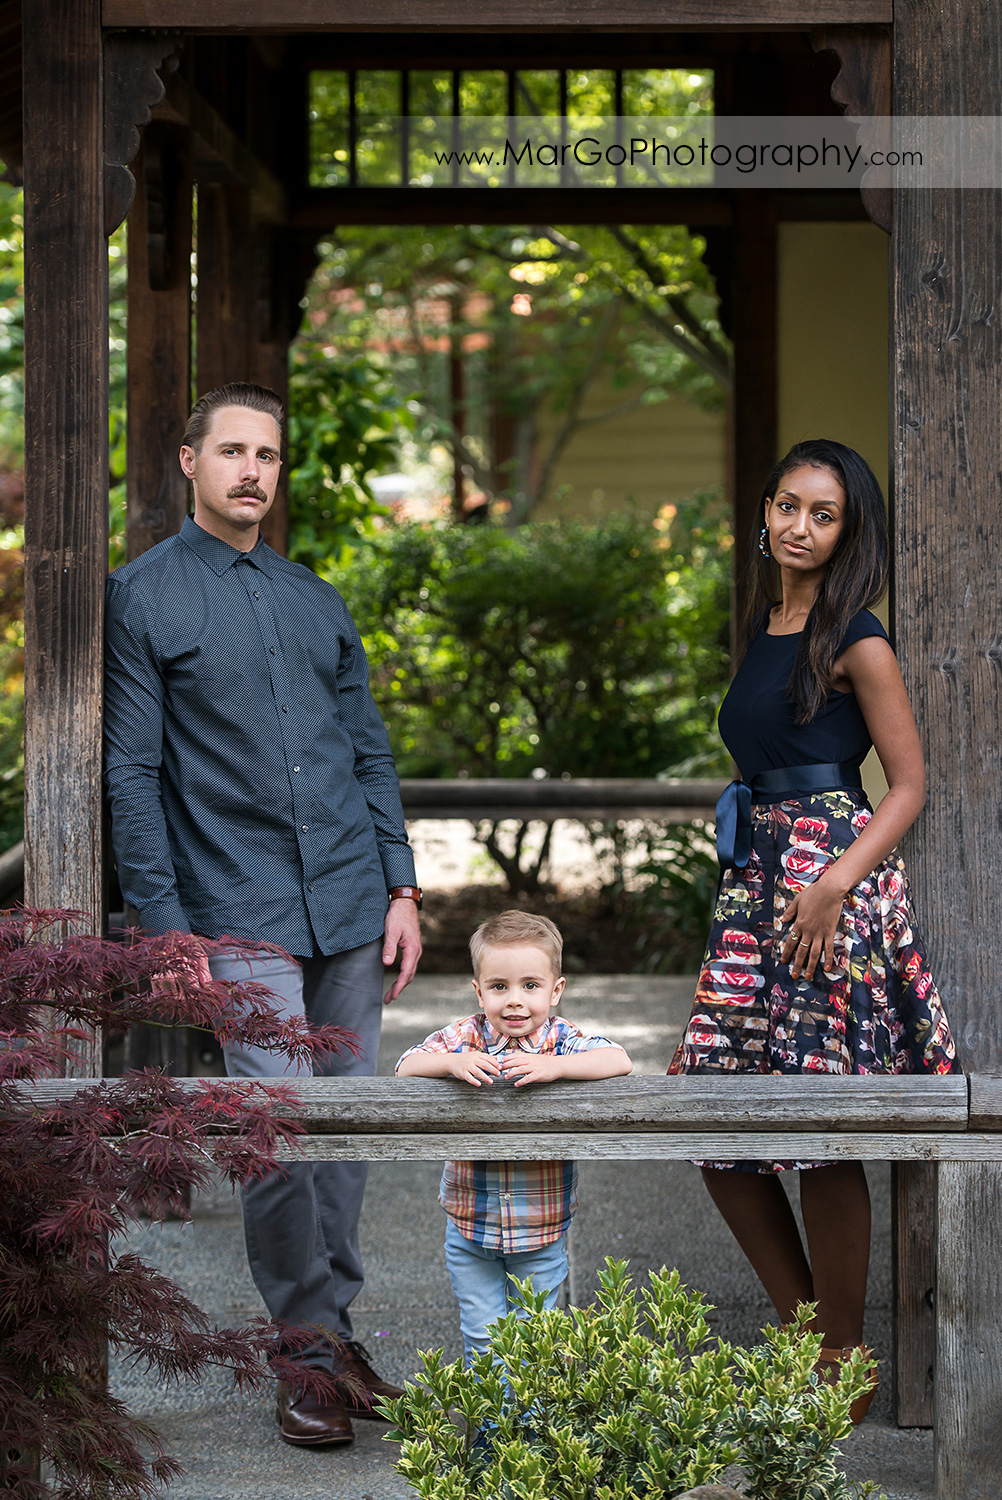 family of 3 under wooden structure in Shinn Historical Park and Arboretum in Fremont